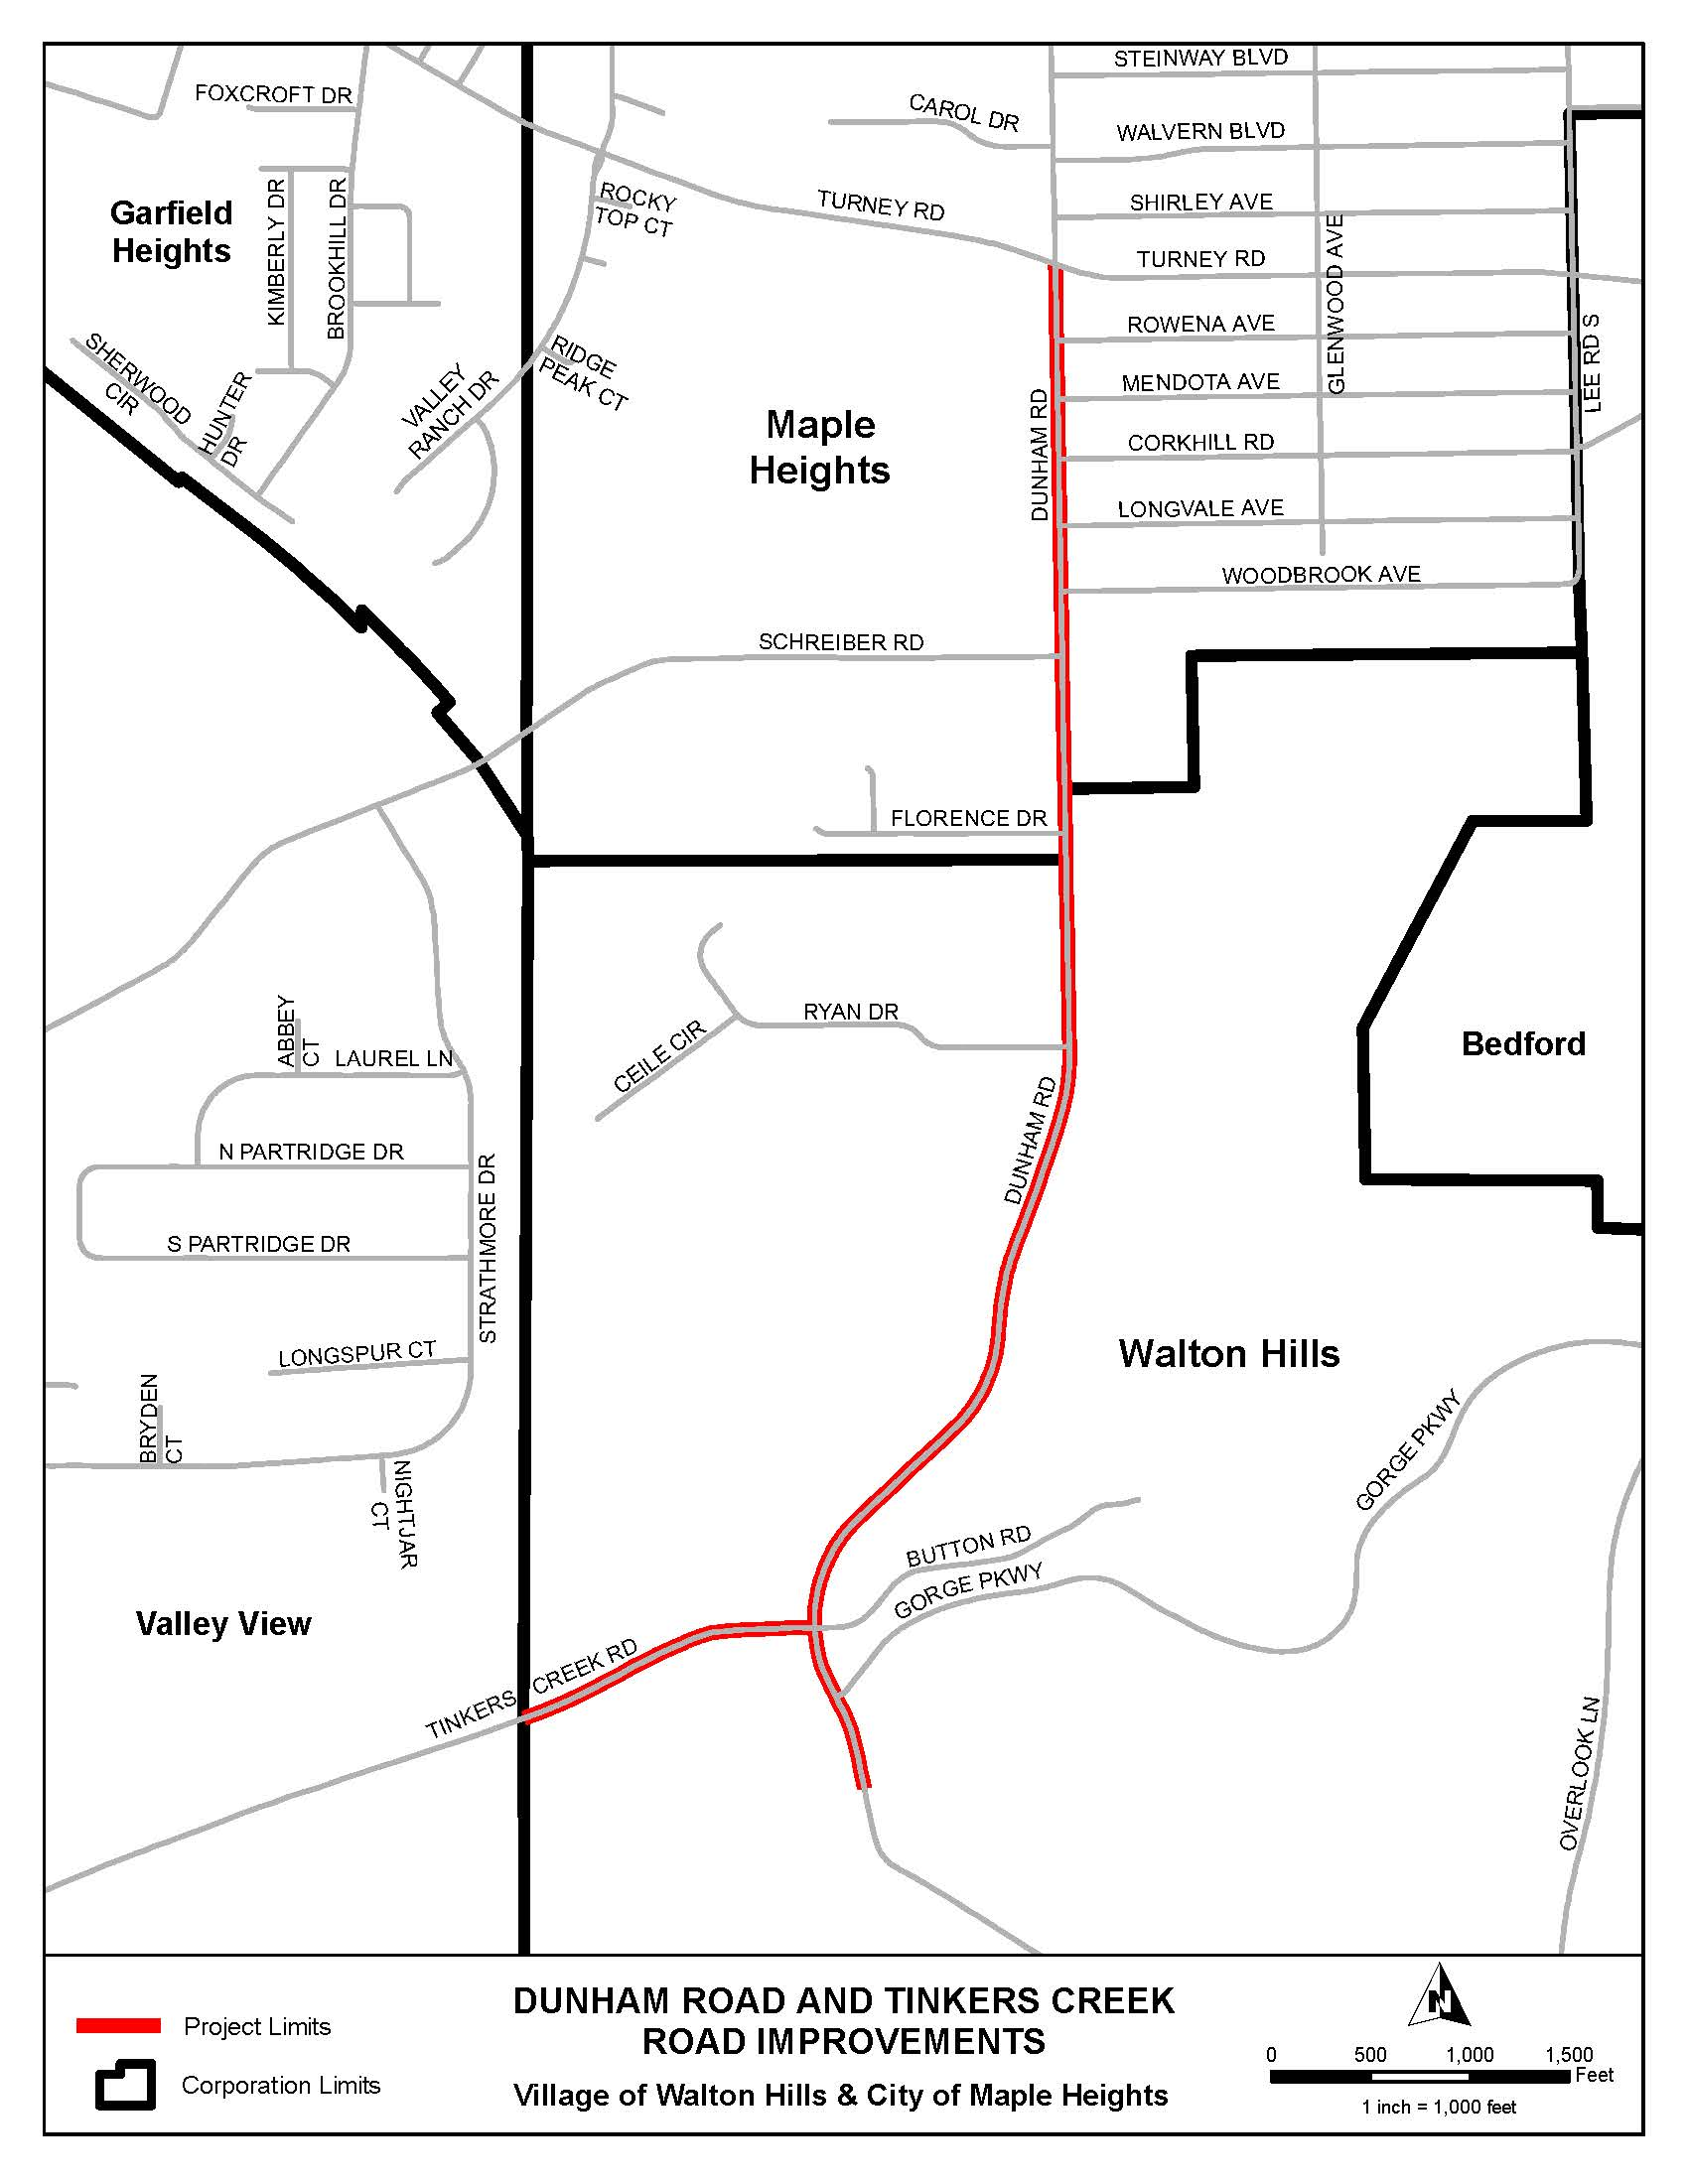 Map of the Project Area including Dunham Road and Tinkers Creek Road